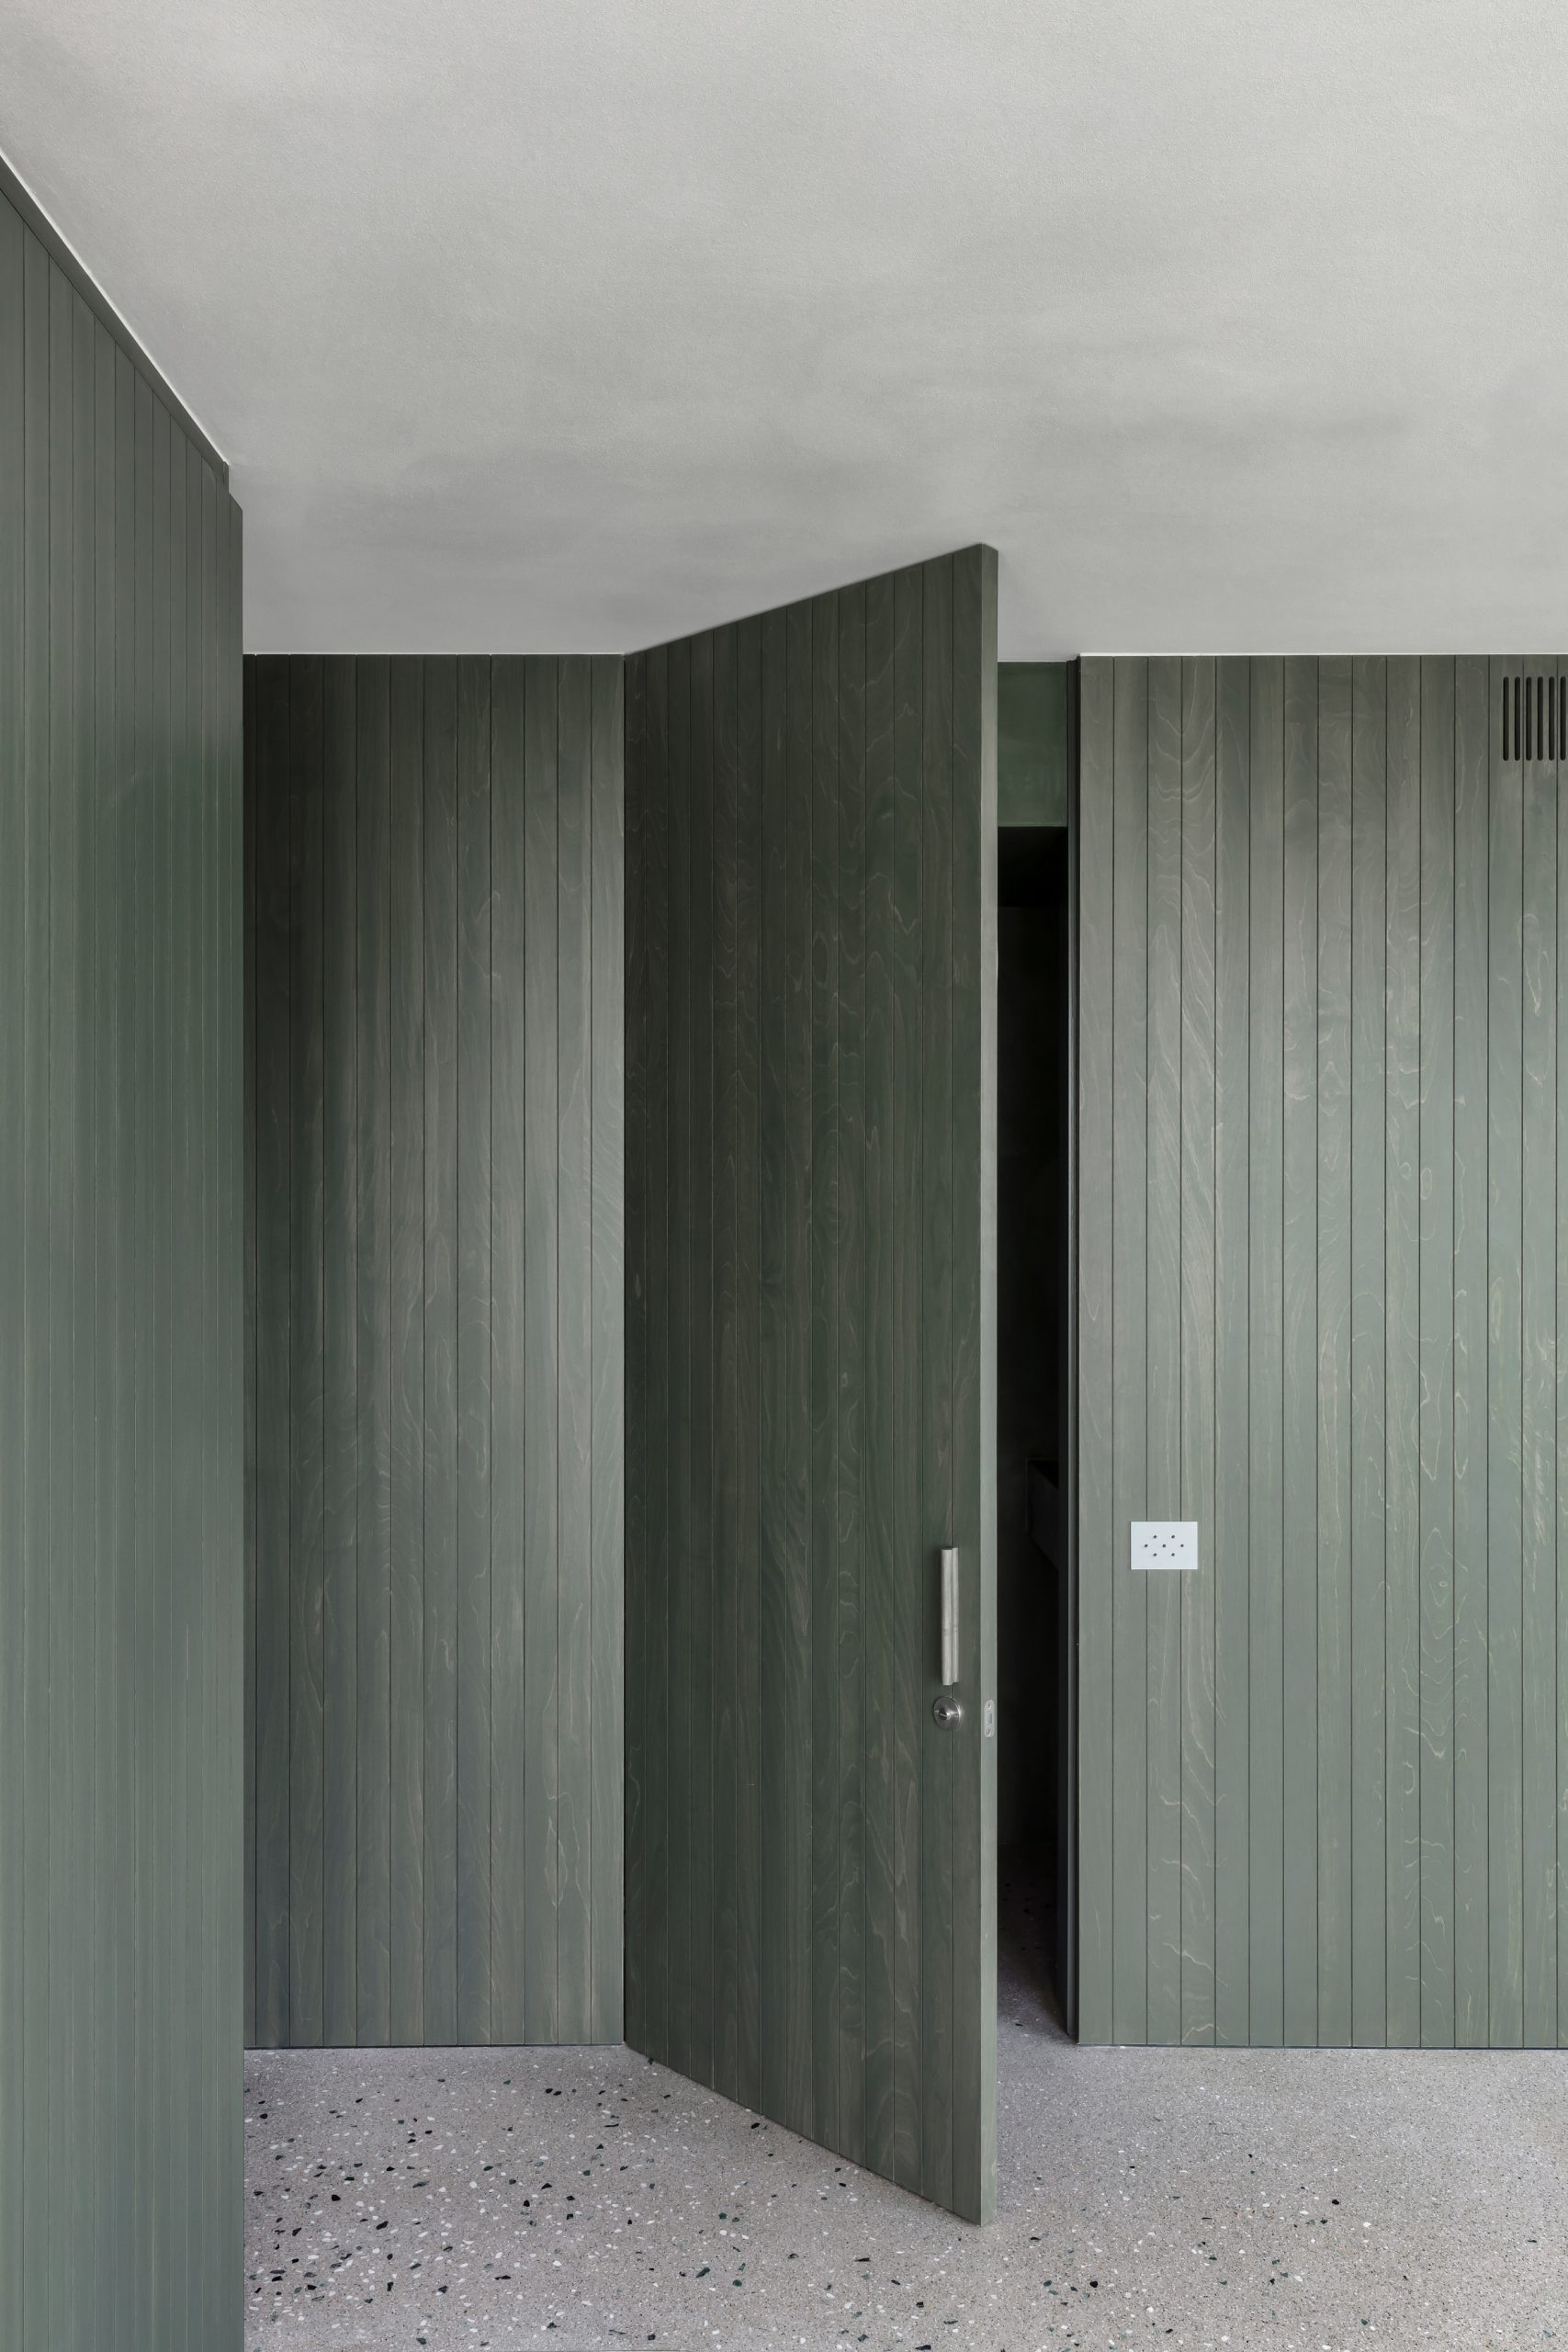 Apartment in Belgium features green joinery